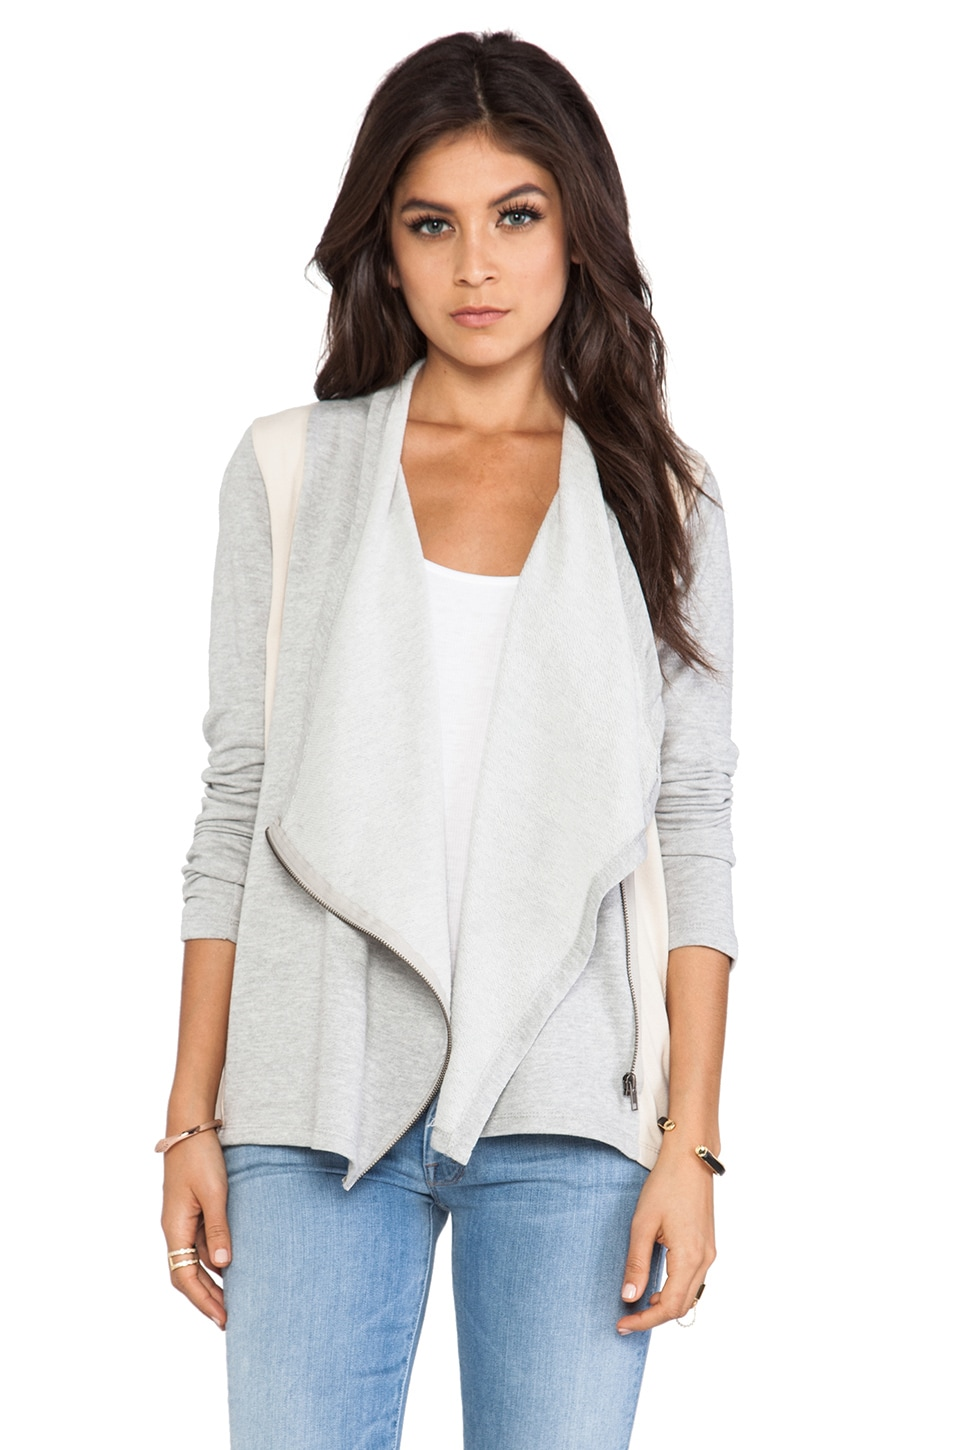 BB Dakota Cadrian Rib Cardigan in Heather Grey